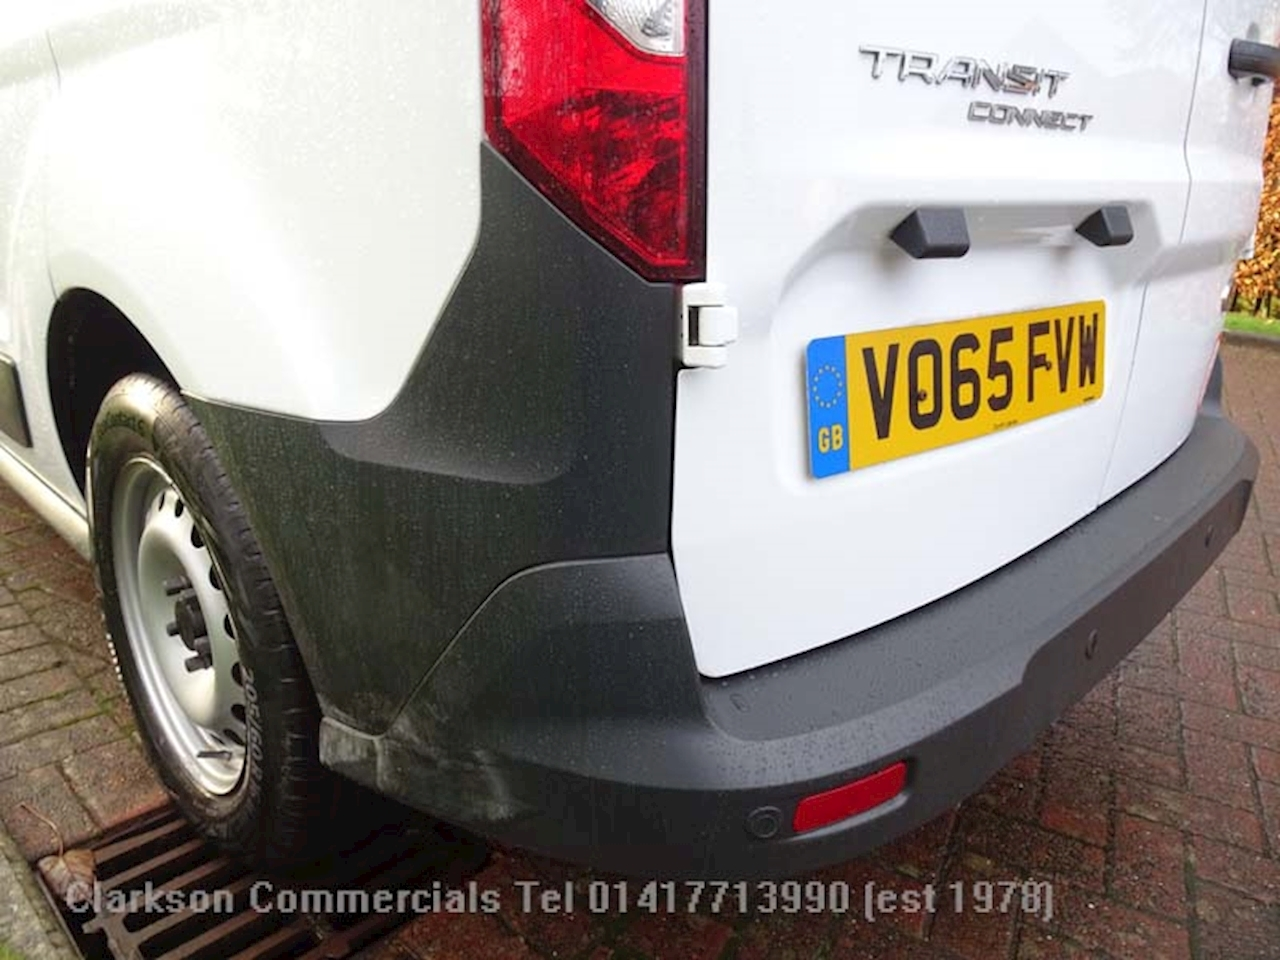 Ford Transit Connect 1.6 TDCi 200 Panel Van 4dr Diesel Manual L1 (124 g/km, 74 bhp) Panel Van 1.6 Manual Diesel